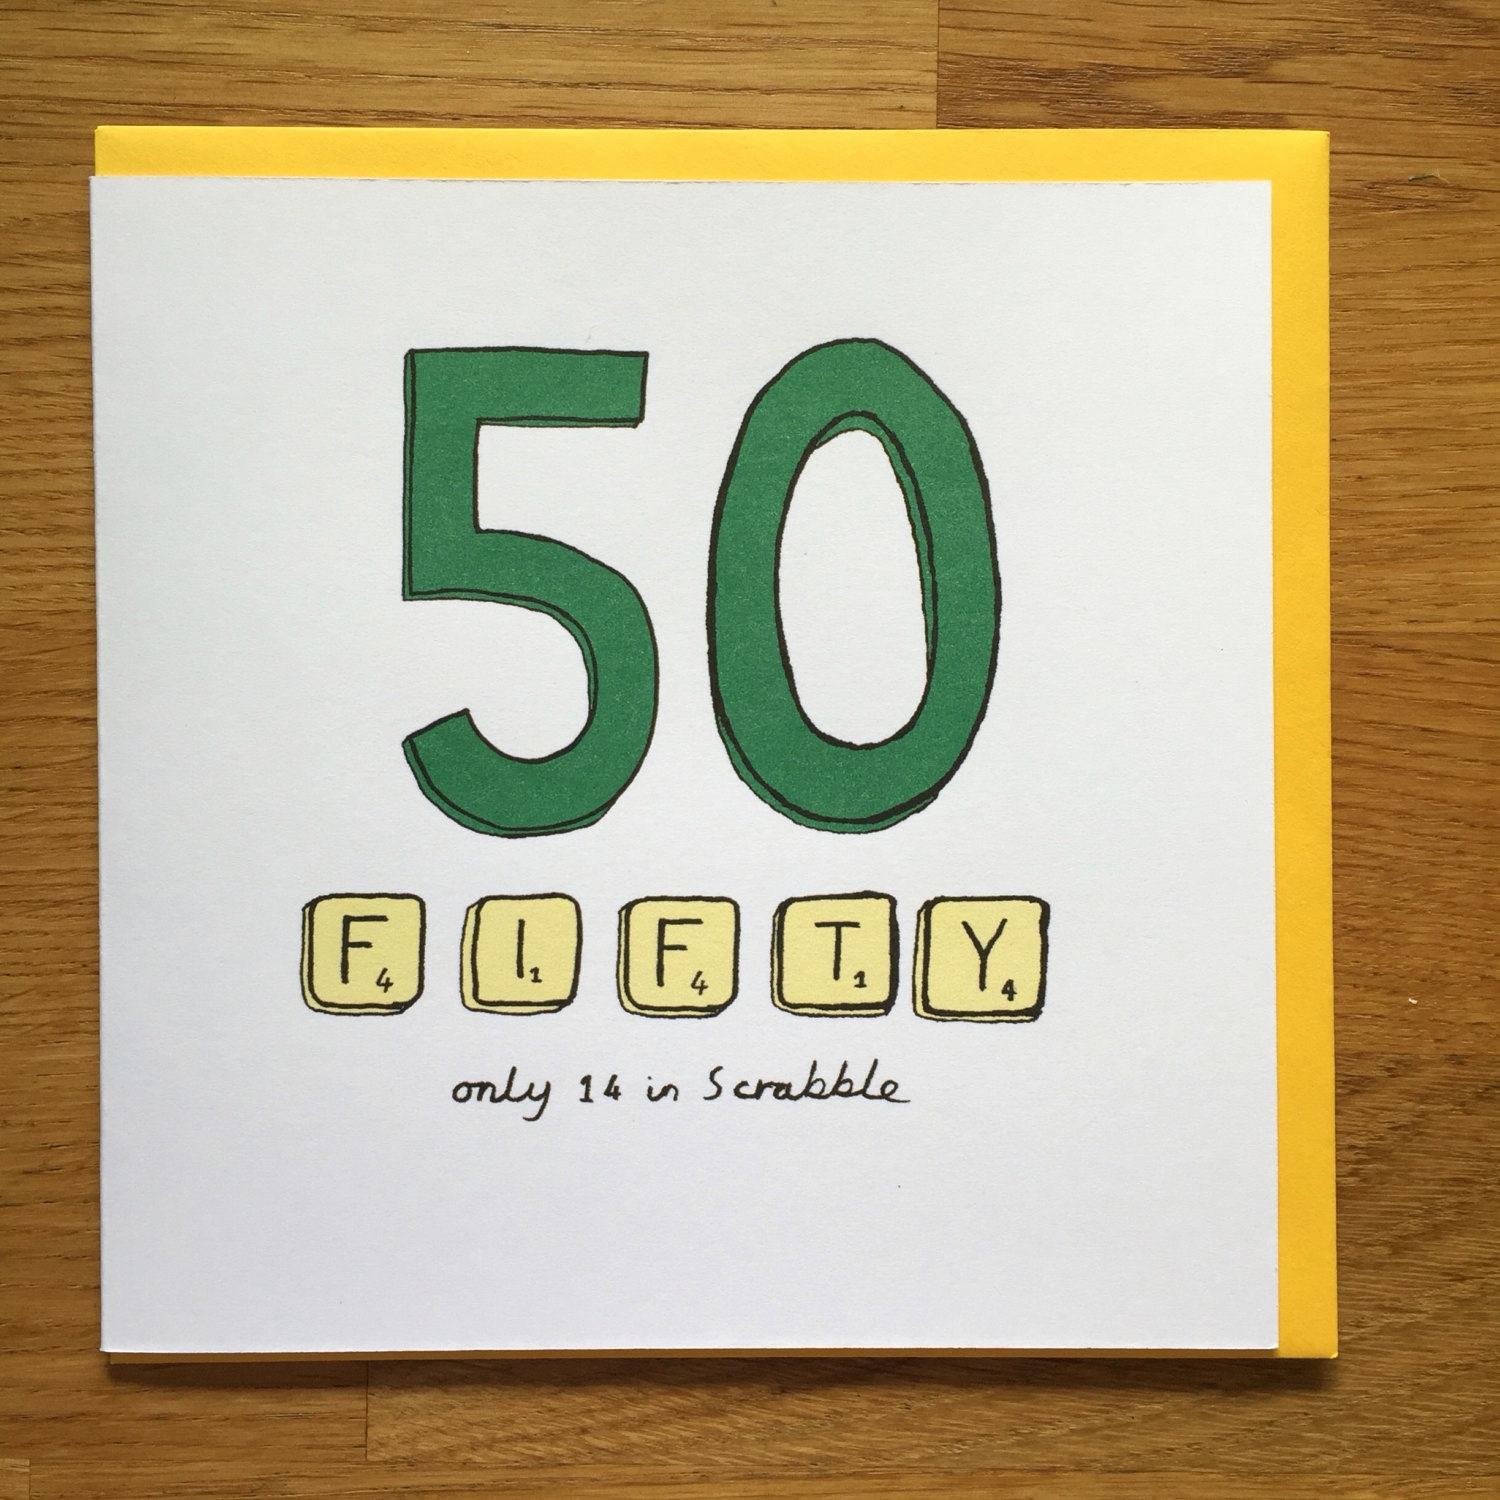 funny things to write on a 50th birthday card ; what-to-write-in-a-50th-birthday-card-beautiful-50th-birthday-cards-of-what-to-write-in-a-50th-birthday-card